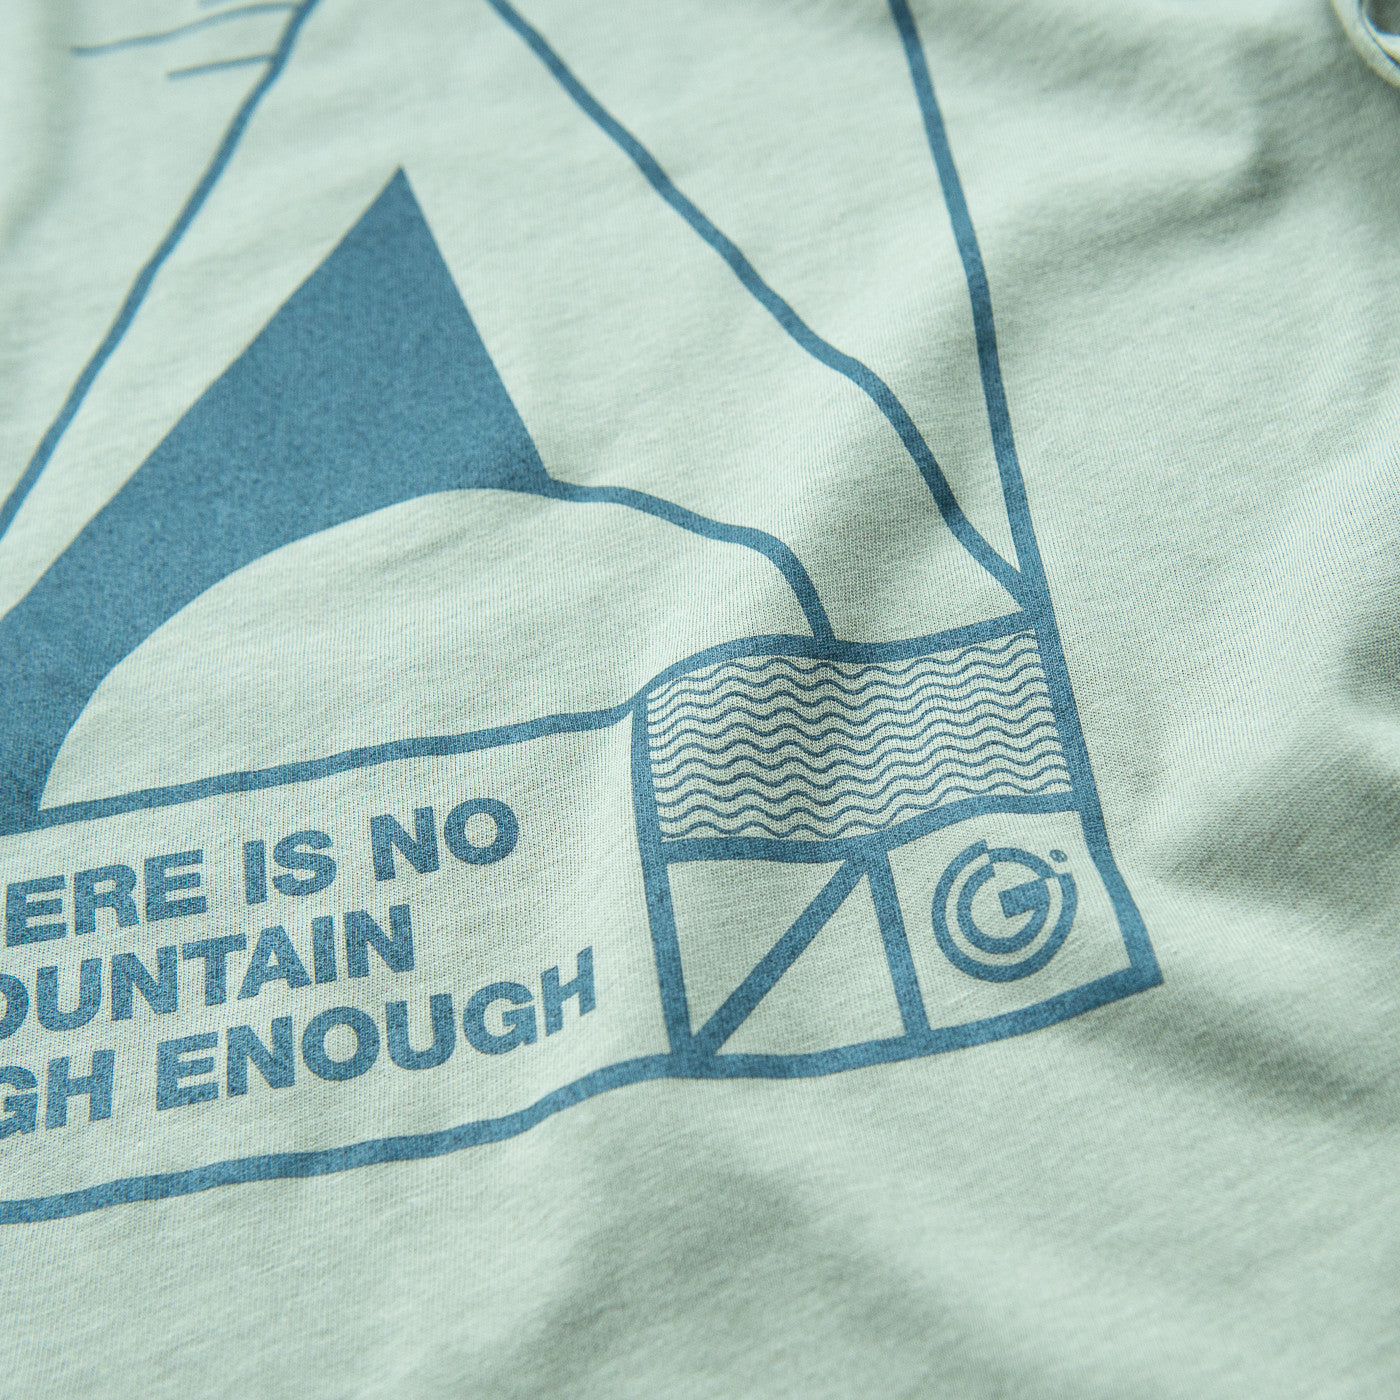 There is no mountain high enough, Mens Organic Long Sleeve Tee from OFFGRID Clothing